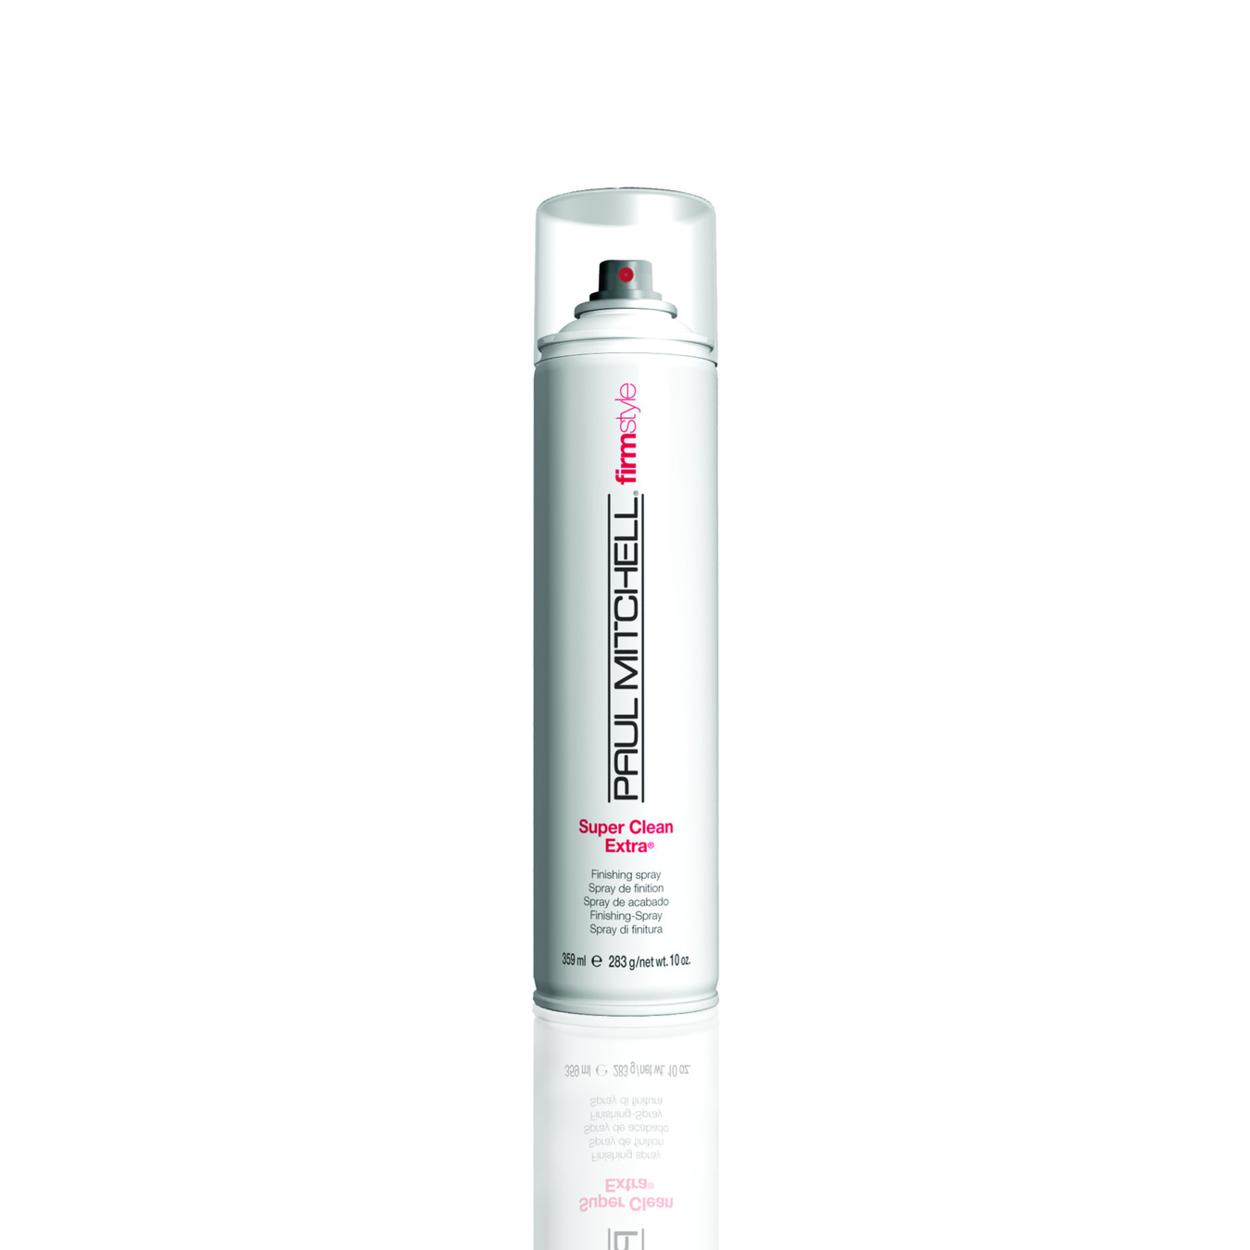 Paul Mitchell Firm Style Super Clean Extra Finishing Spray 315ml